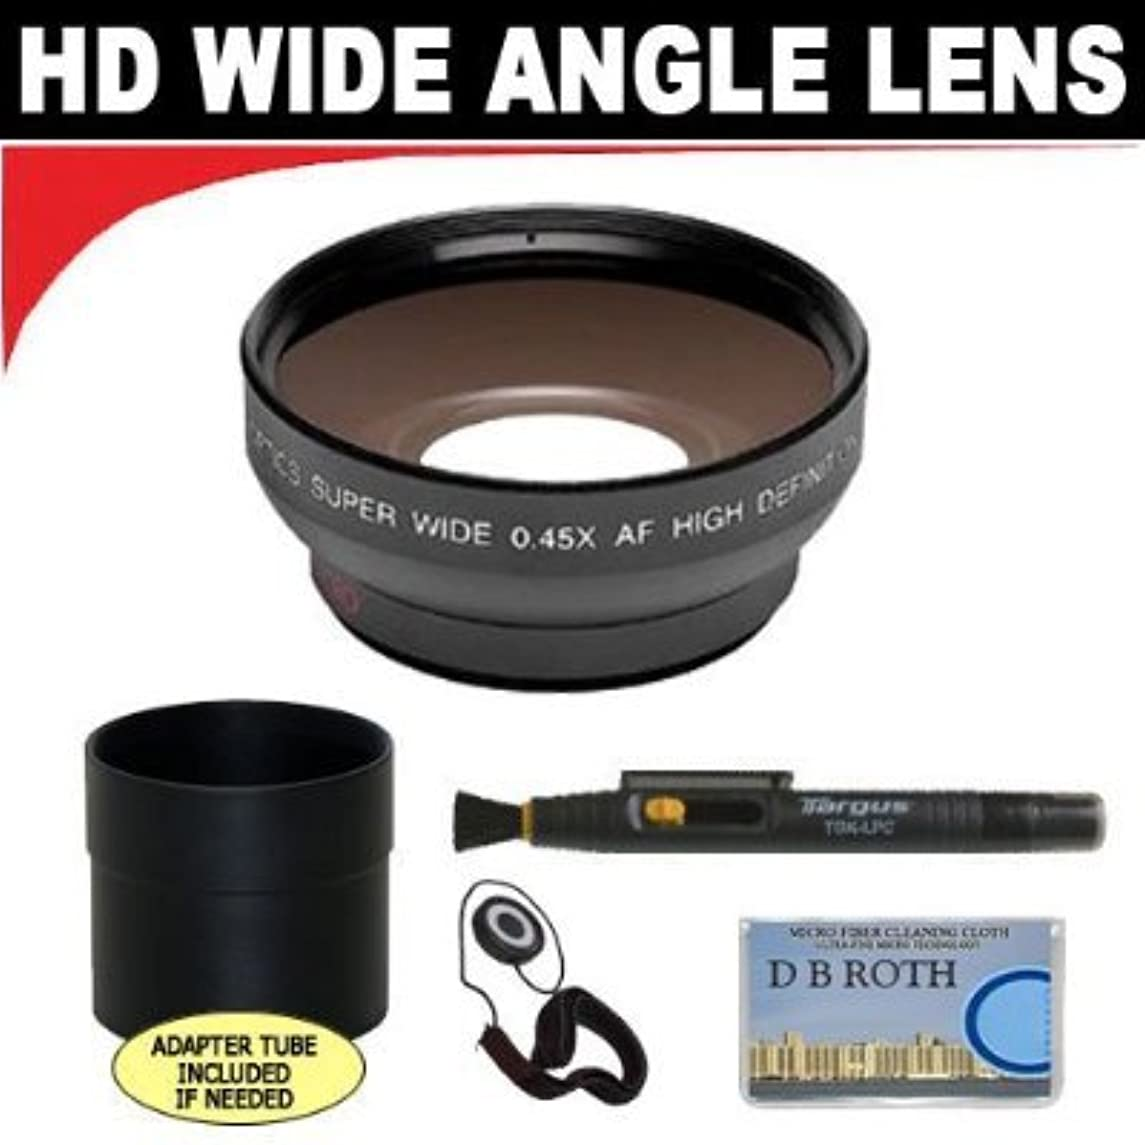 0.5x Digital Wide Angle Macro Professional Series Lens + Lens Adapter Tube (If Needed) + Lenspen + Lens Cap Keeper + DB ROTH Micro Fiber Cloth For The Olympus C-5000 Digital Cameras